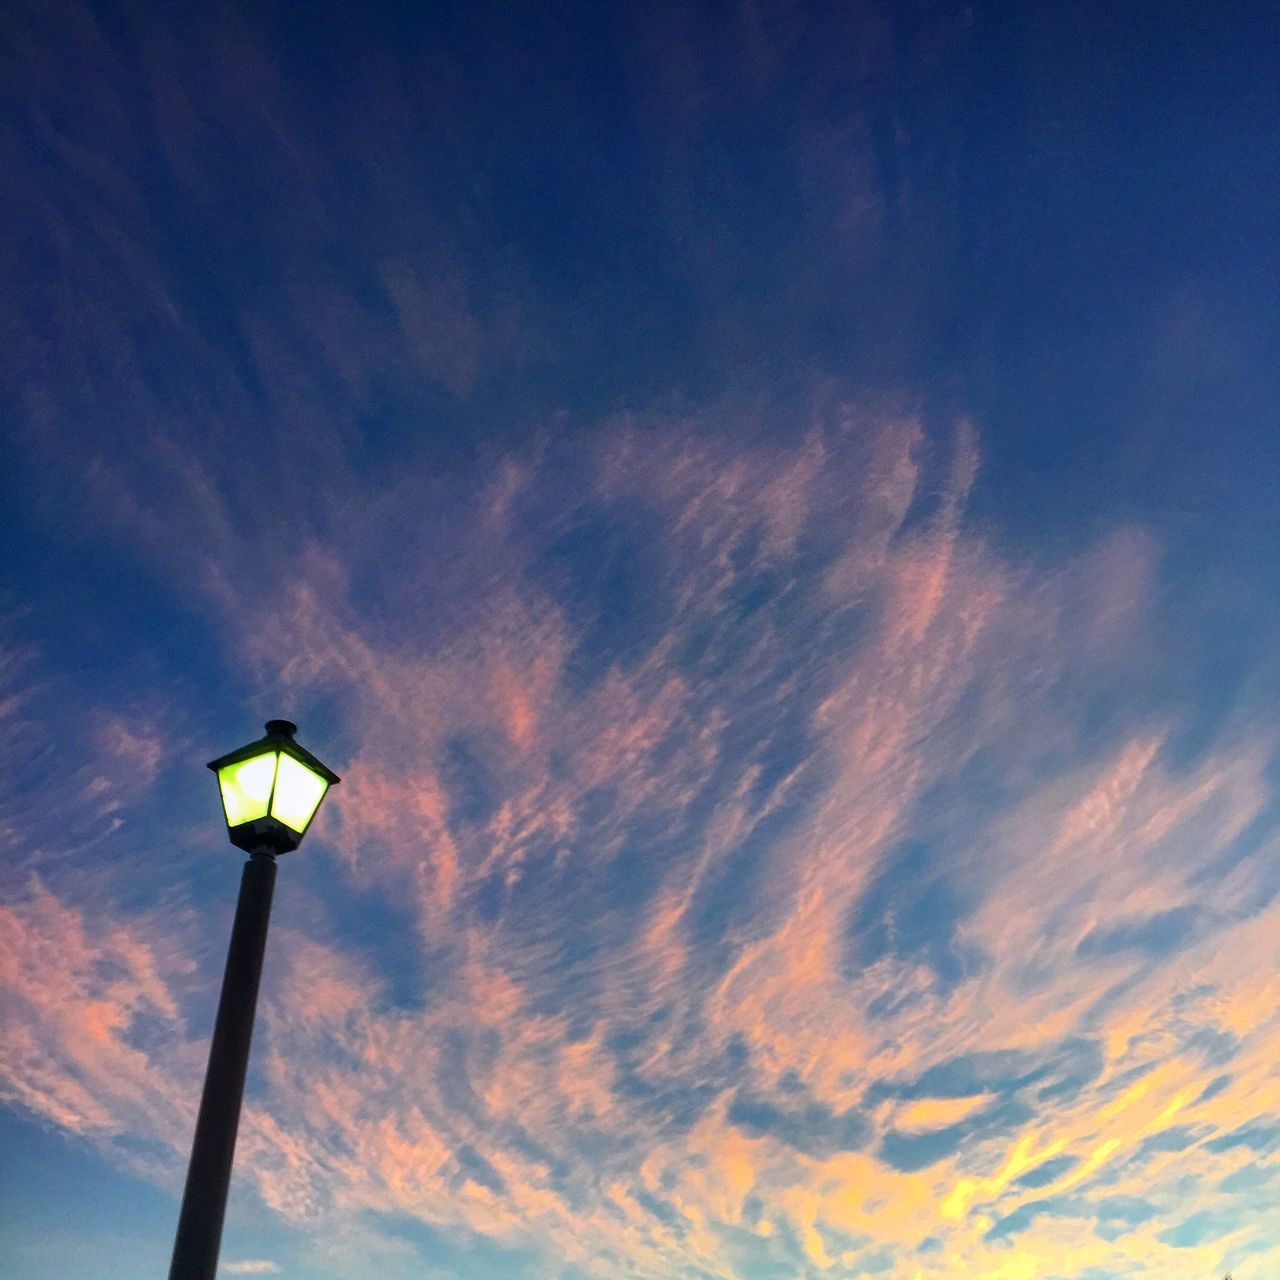 street light, lighting equipment, low angle view, illuminated, sky, cloud - sky, floodlight, outdoors, no people, nature, day